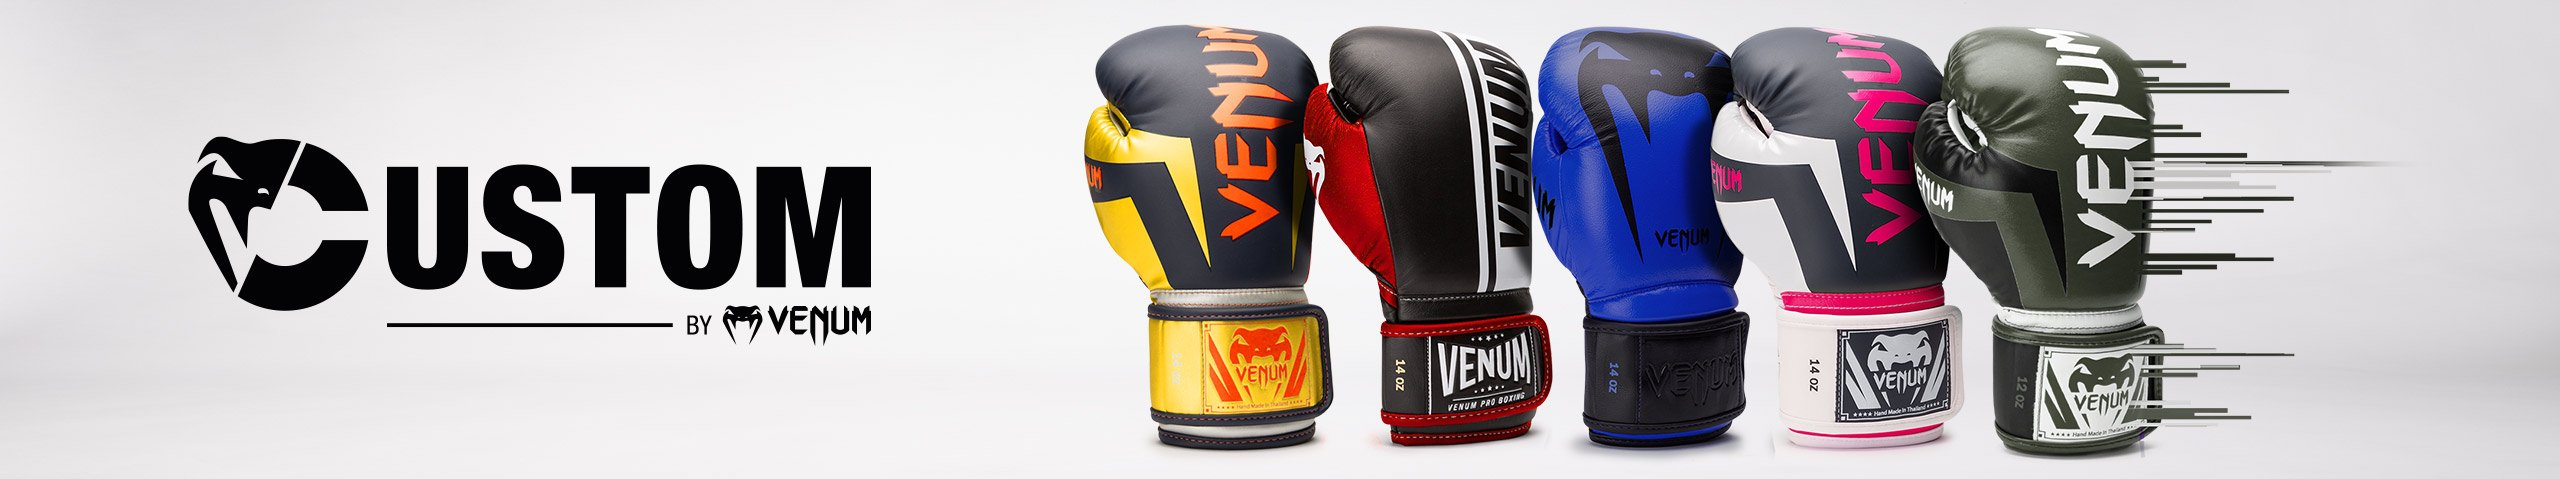 Boxing Glove : Venum boxing gloves (sparring, training & fighting gloves) - Venum.com Europe